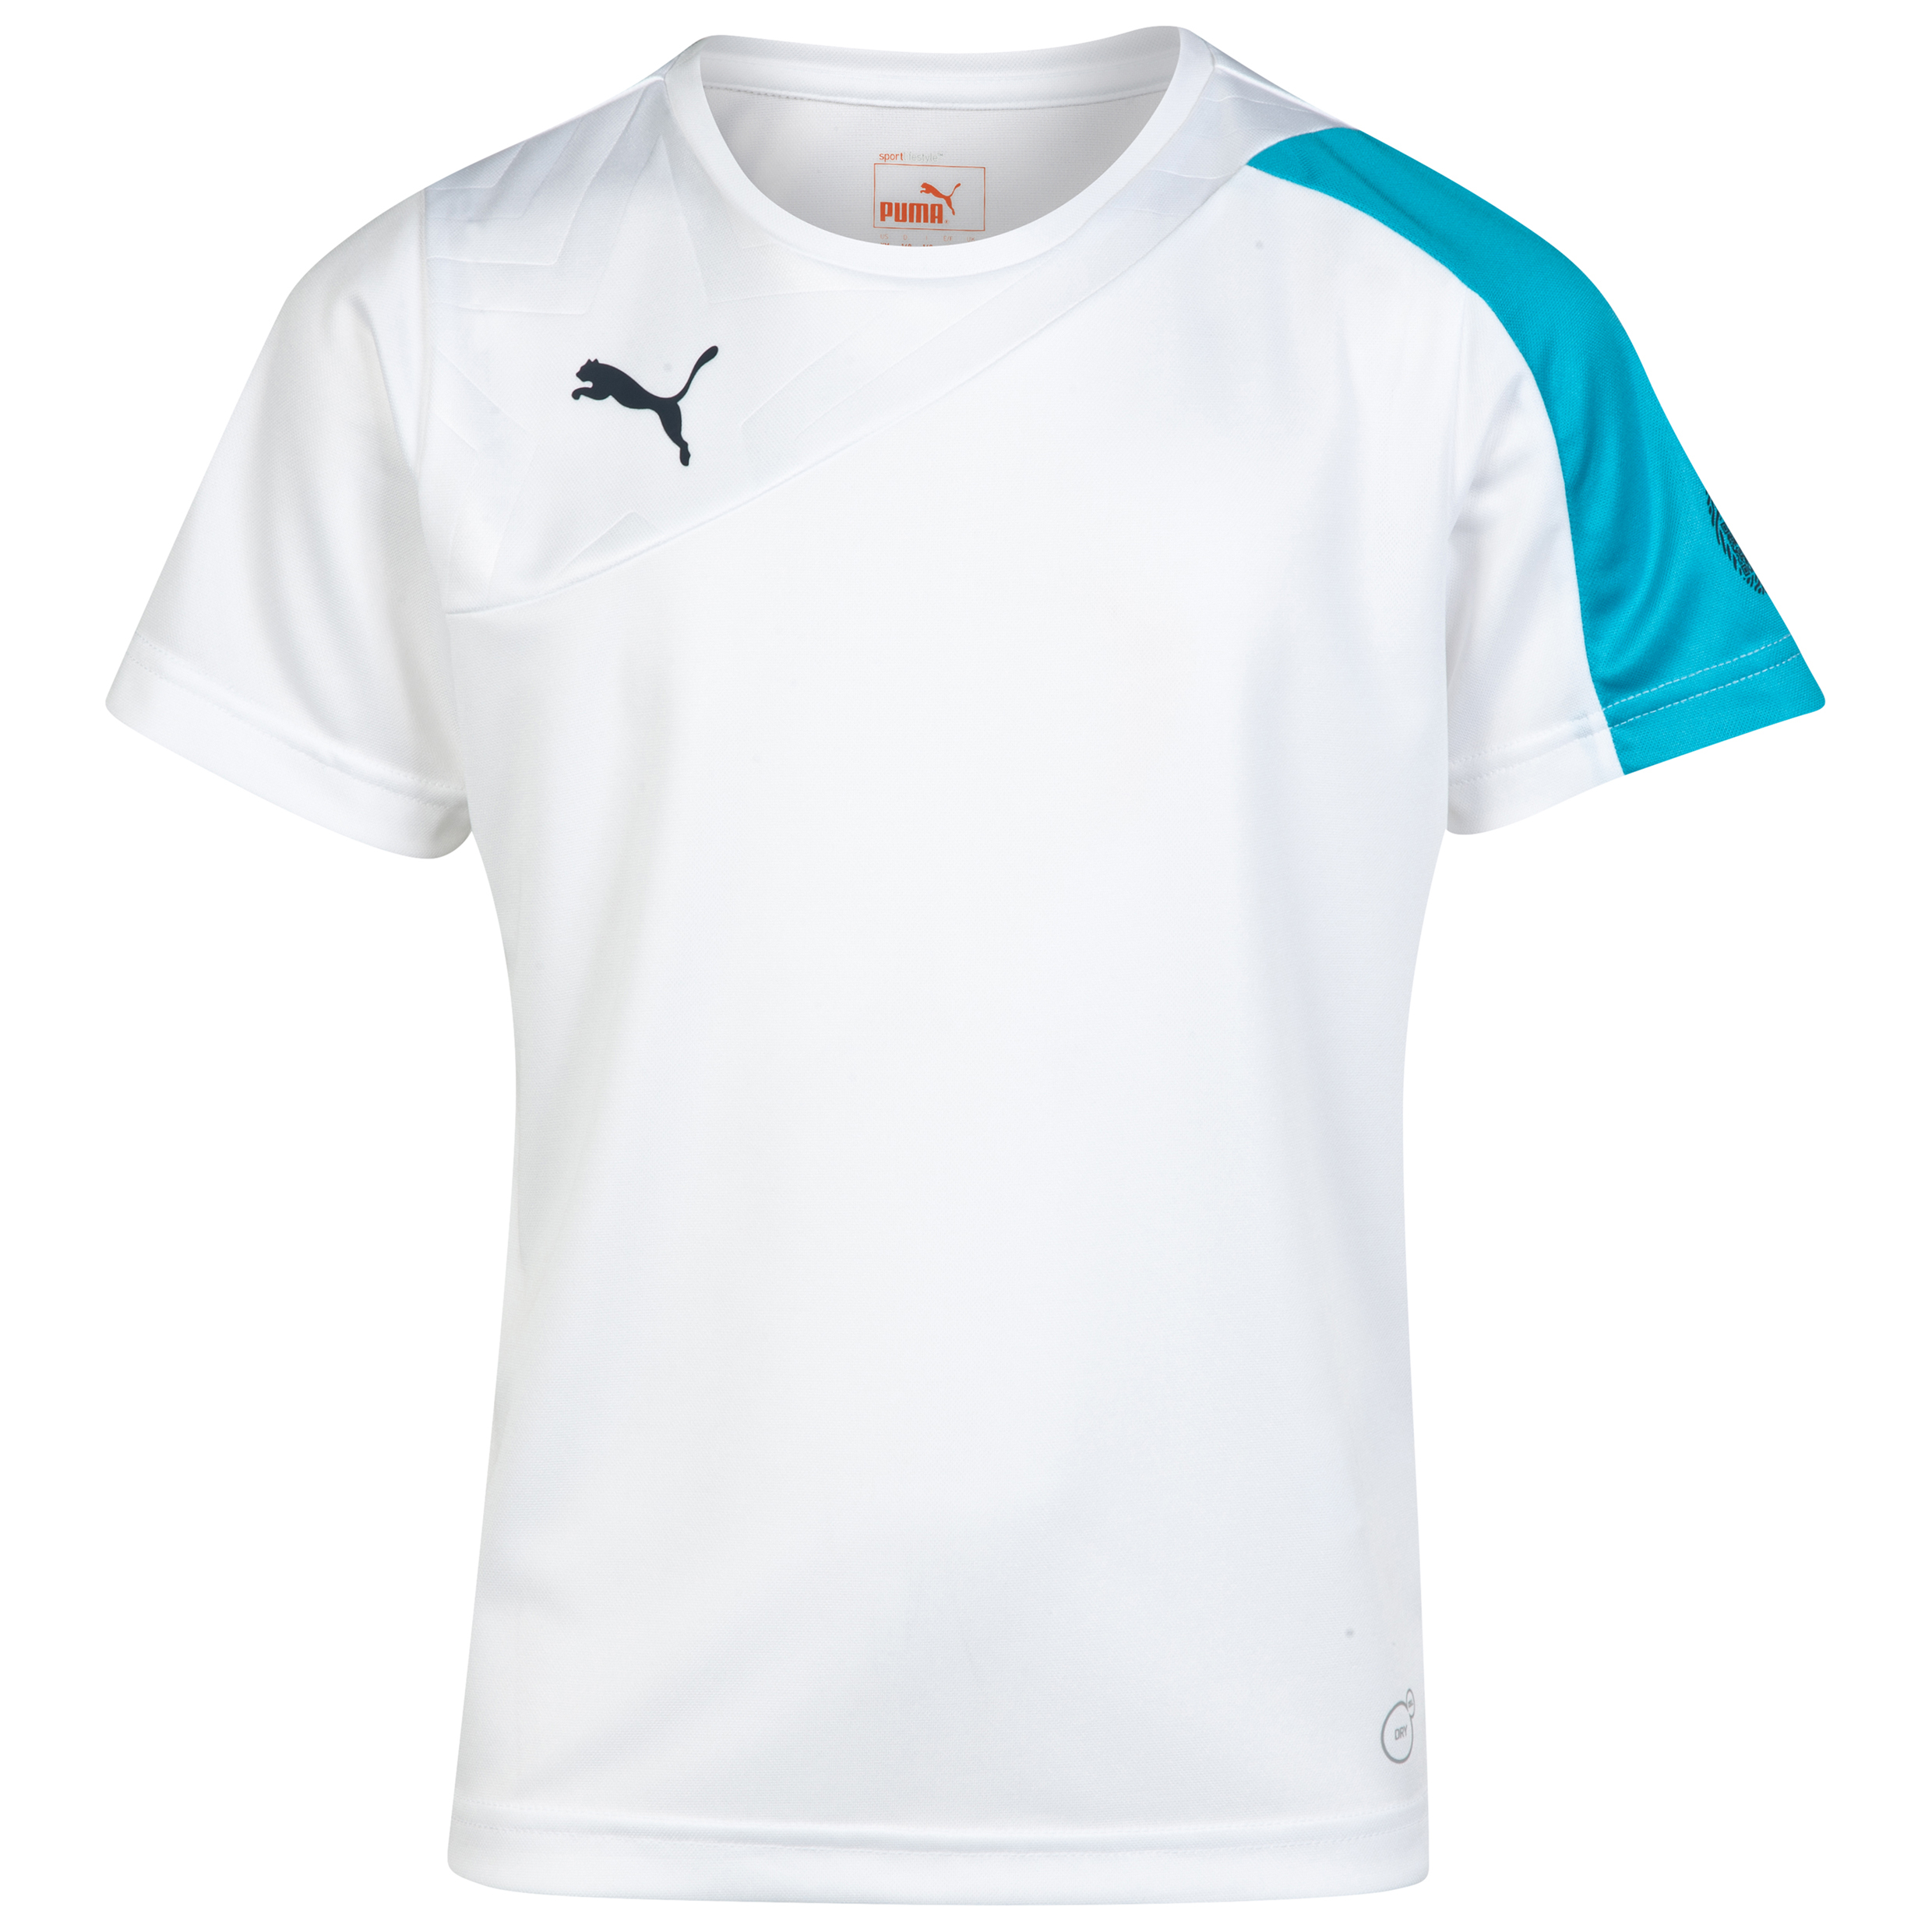 Puma evoSPEED TRICKS Graphic T-Shirt